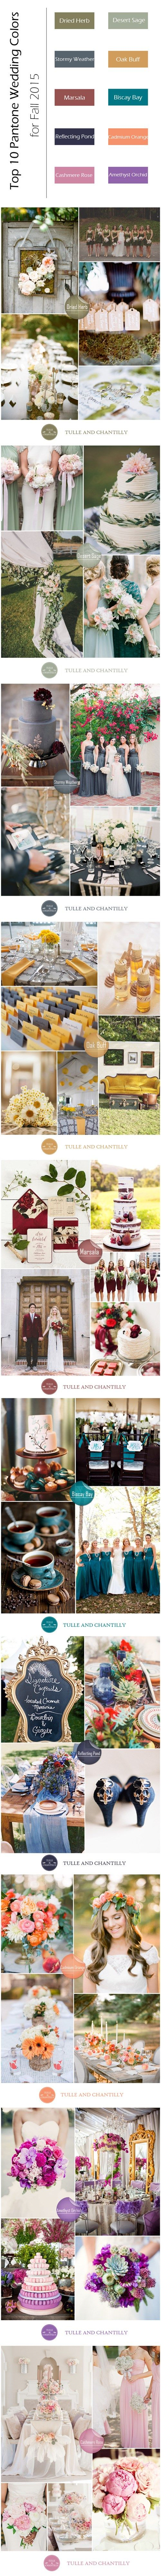 Fall wedding ideas - Top 10 Pantone Inspired Fall Wedding Colors 2015